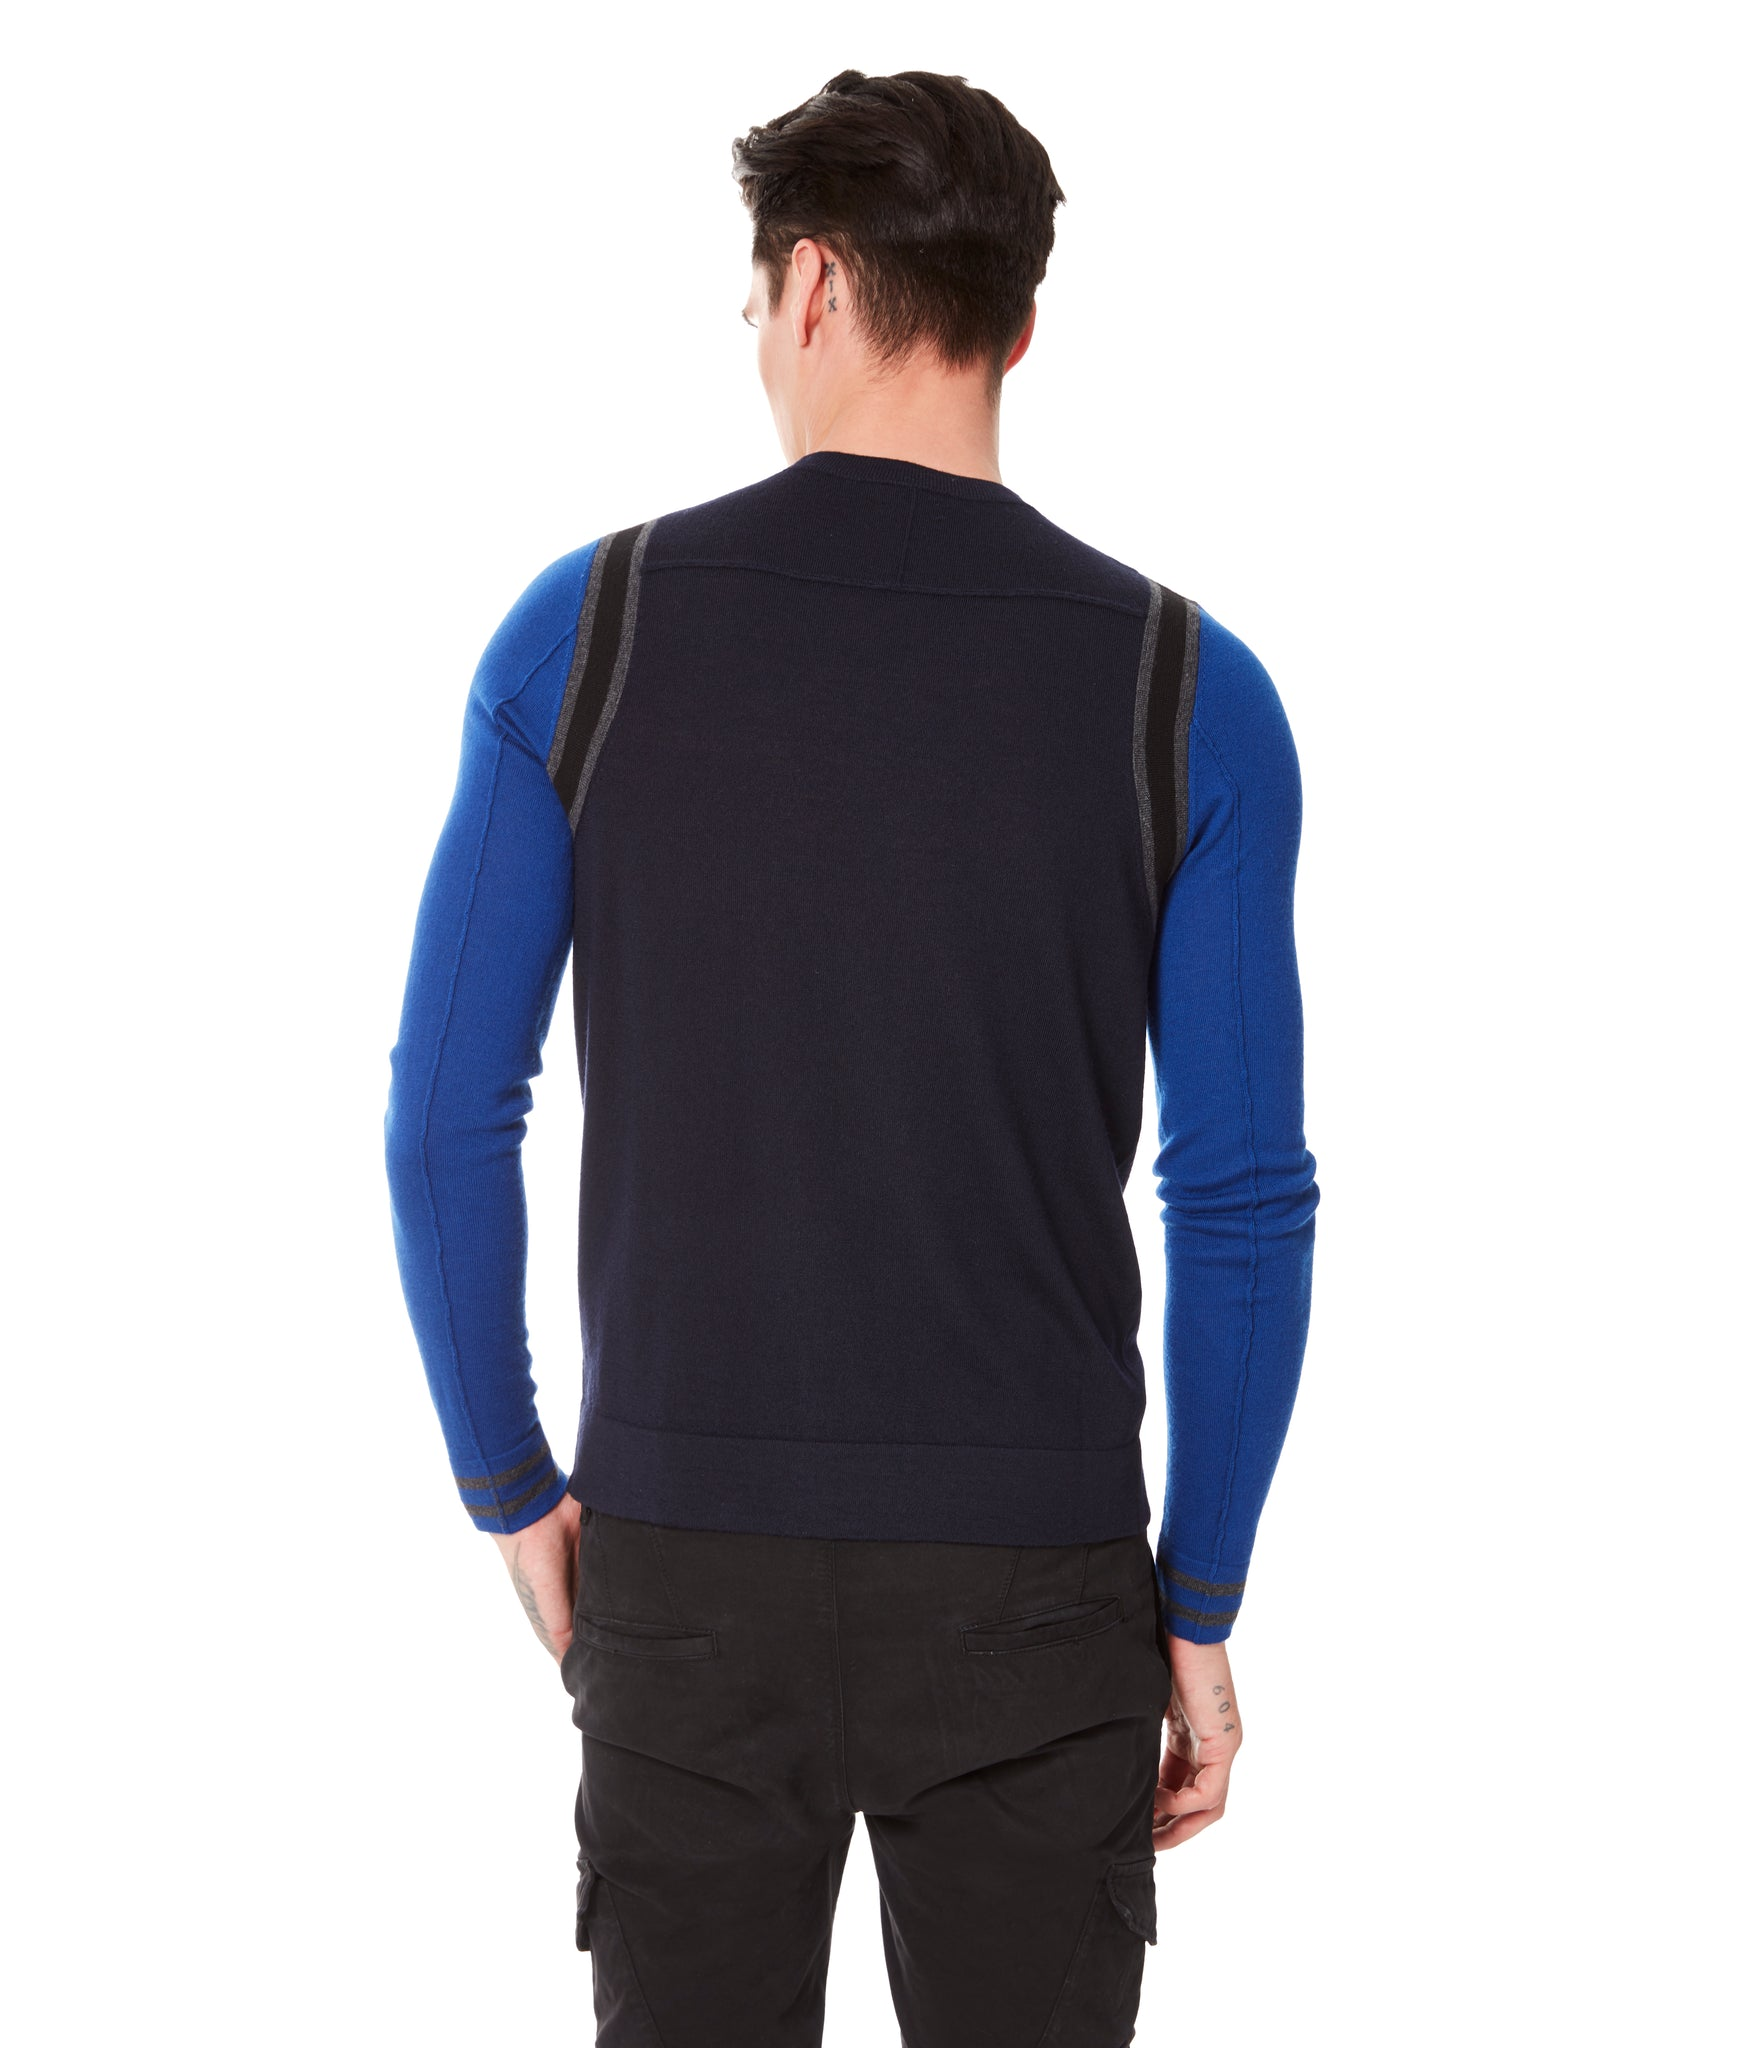 MVP Athletic Color Block Sweater - Blue